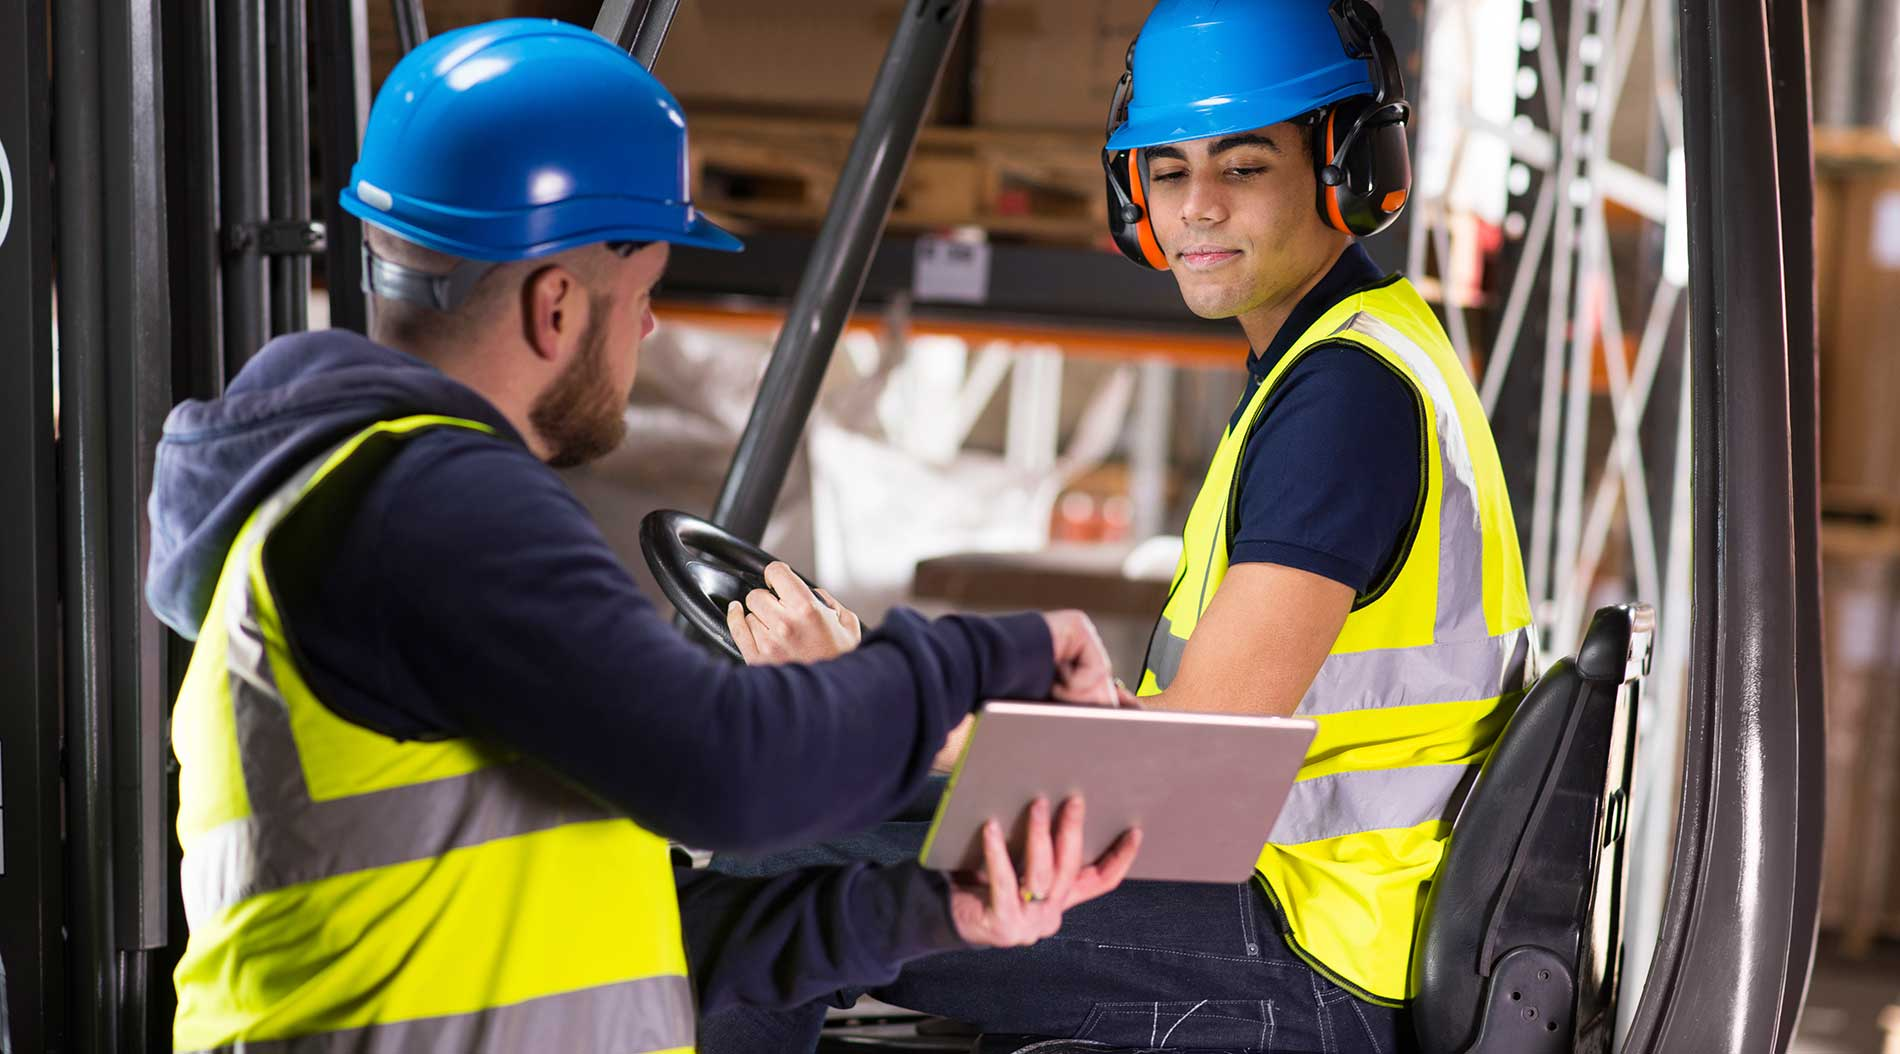 How long does forklift training take?